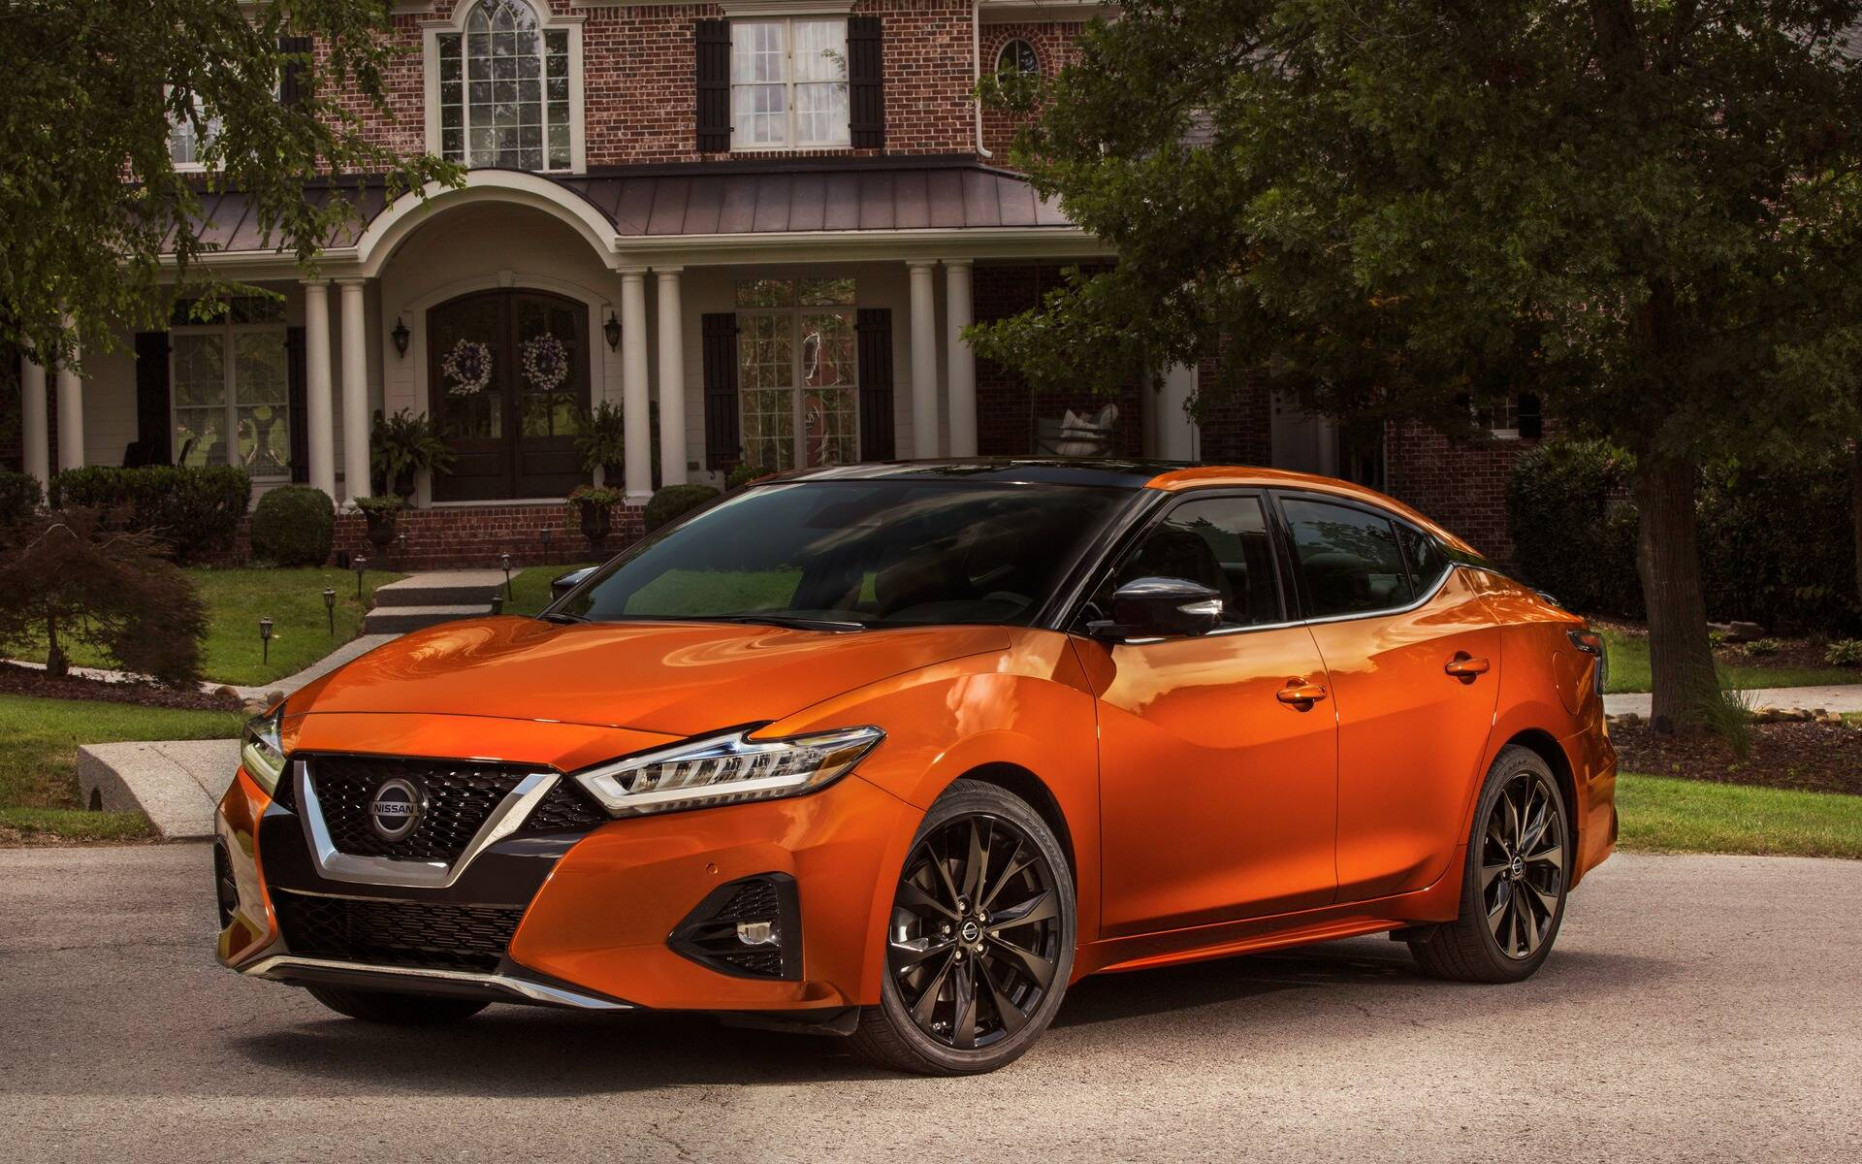 Images When Will The 2022 Nissan Maxima Come Out